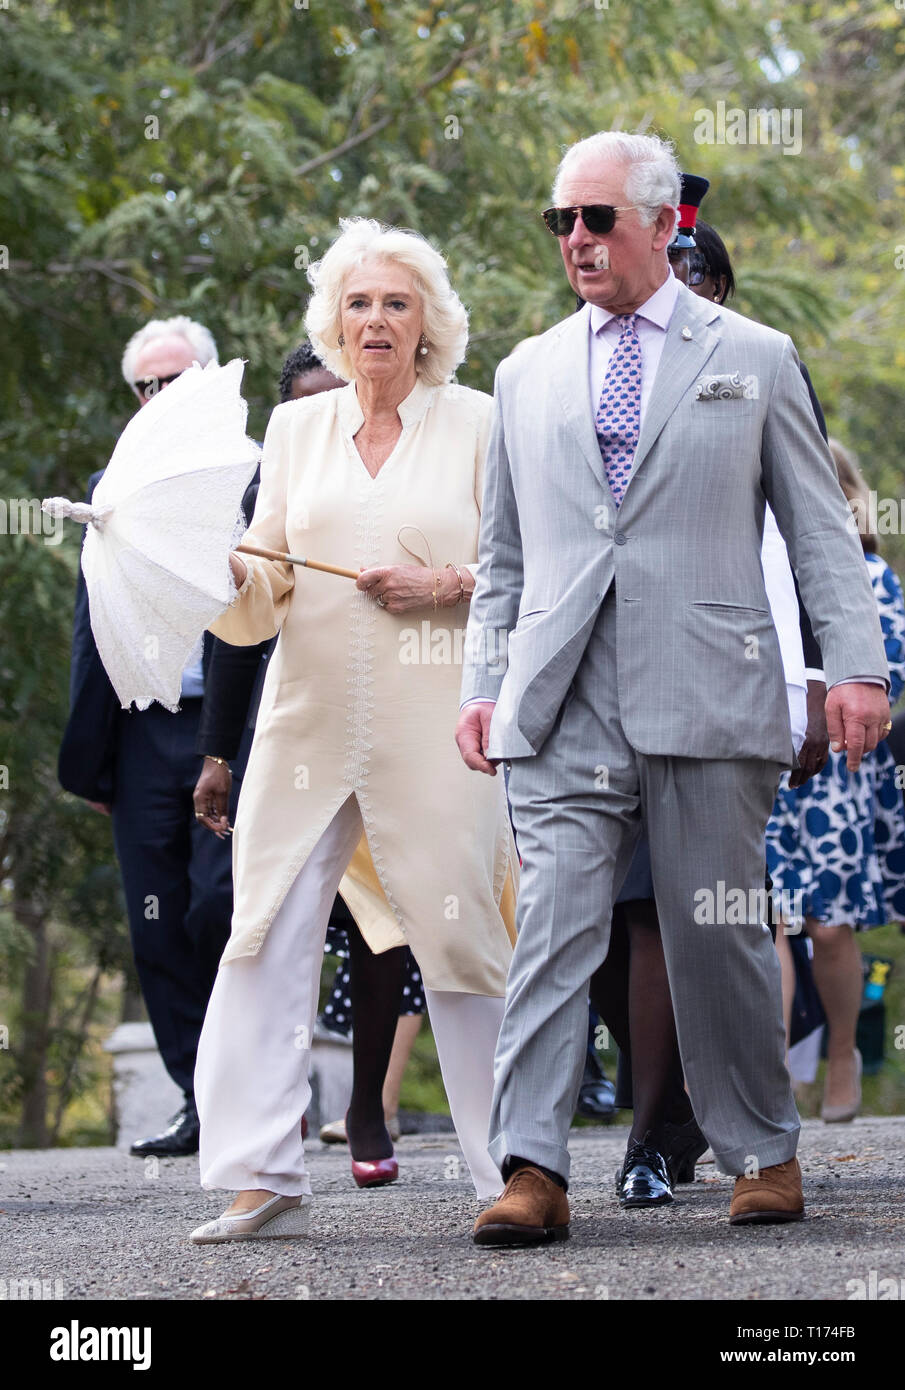 The Prince of Wales and the Duchess of Cornwall after the Official Welcome Ceremony and Reception with the Prime Minister Dr. Keith Mitchell at the Grenada Houses of Parliament Building during a one day visit to the Caribbean island of Grenada. - Stock Image